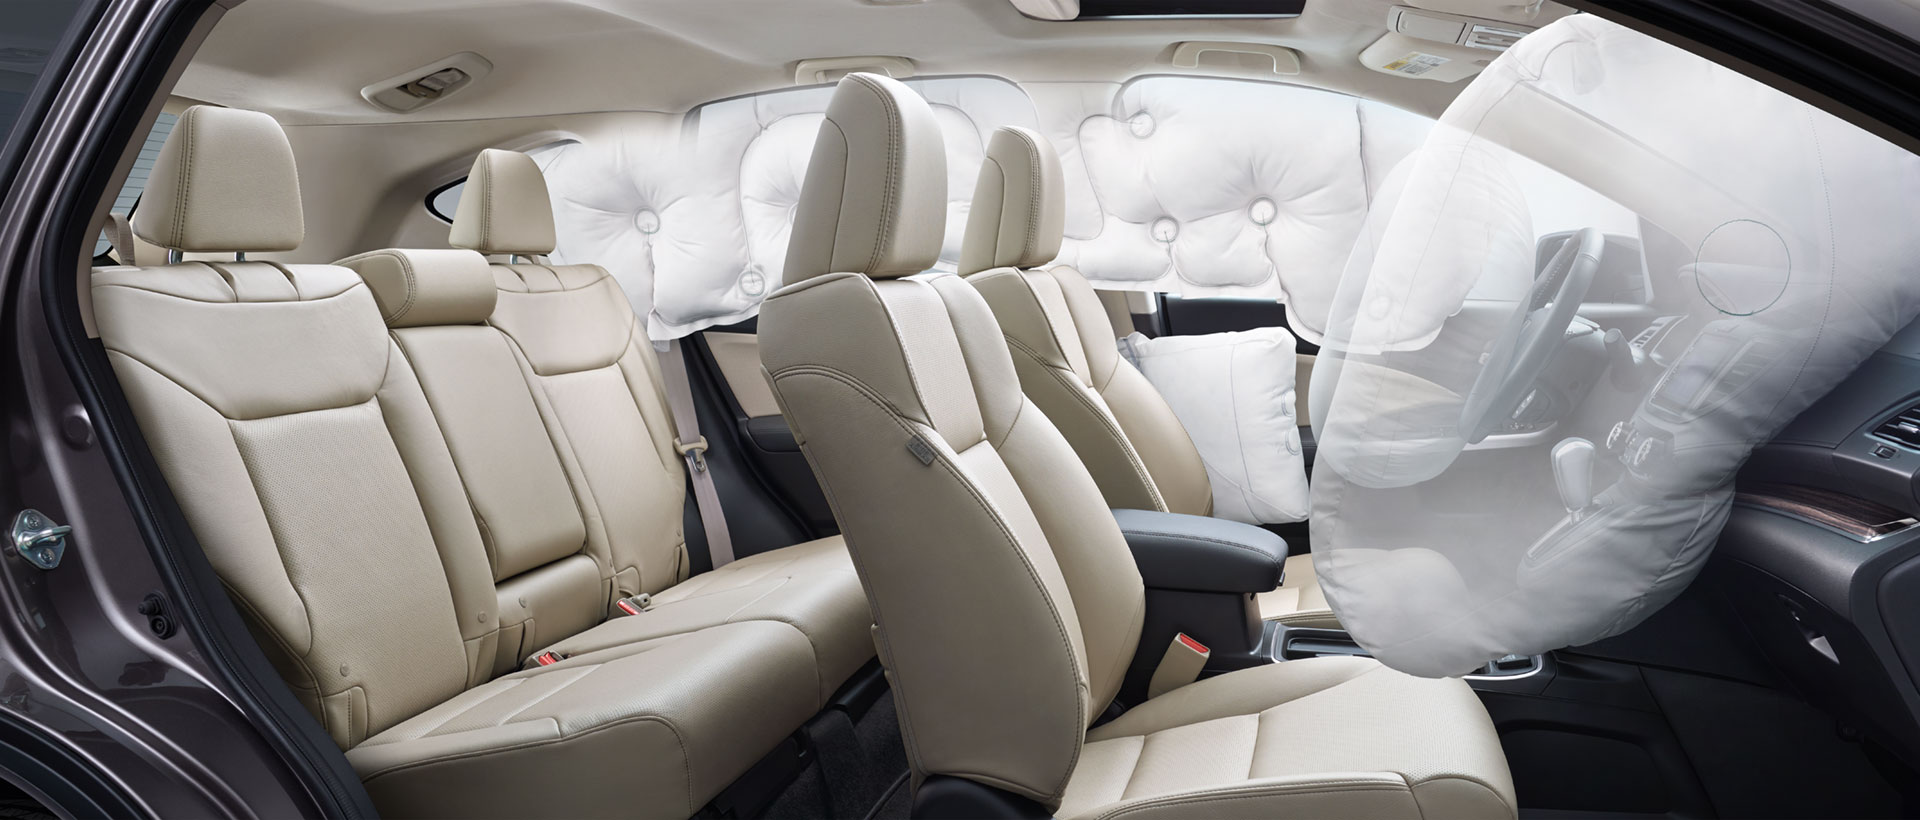 Honda Airbag Safety